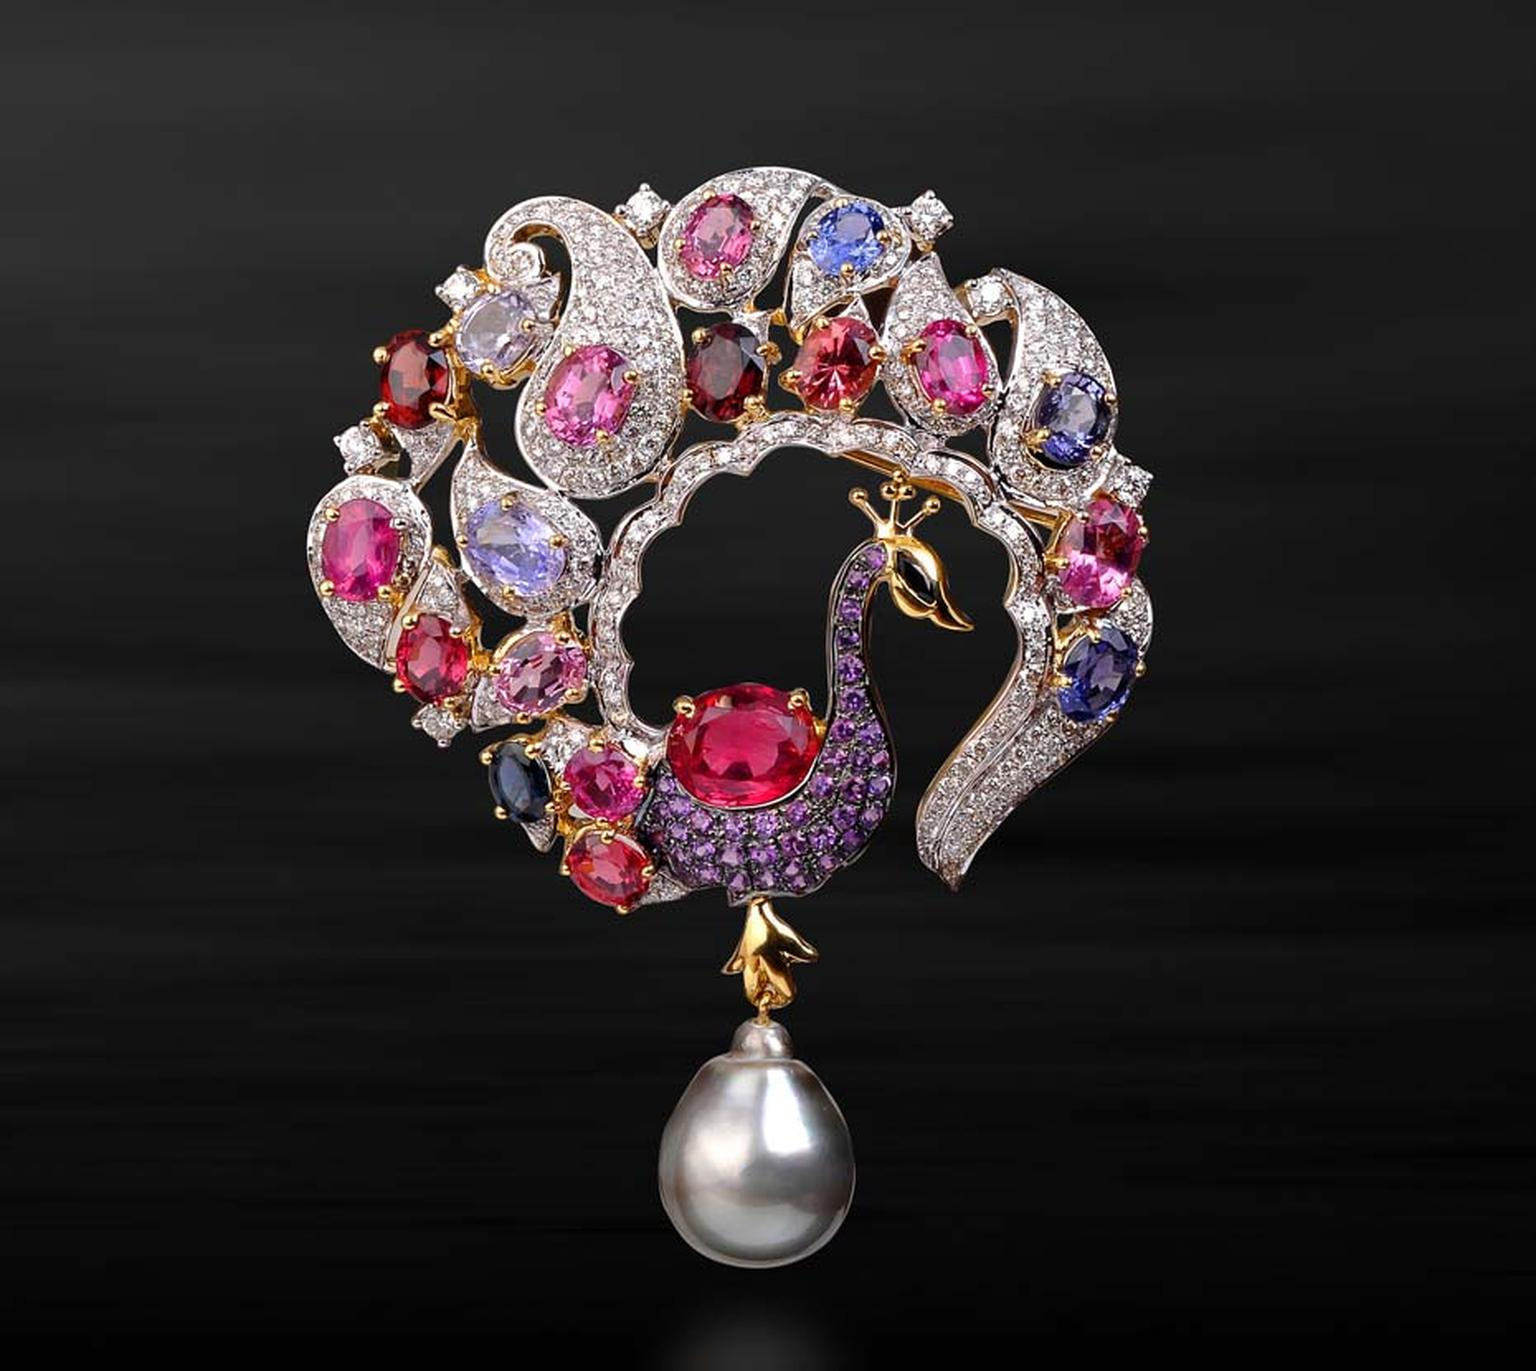 Farah Khan Peacock brooch with a paisley motif tail with a grey pearl, studded with multi-coloured gemstones.